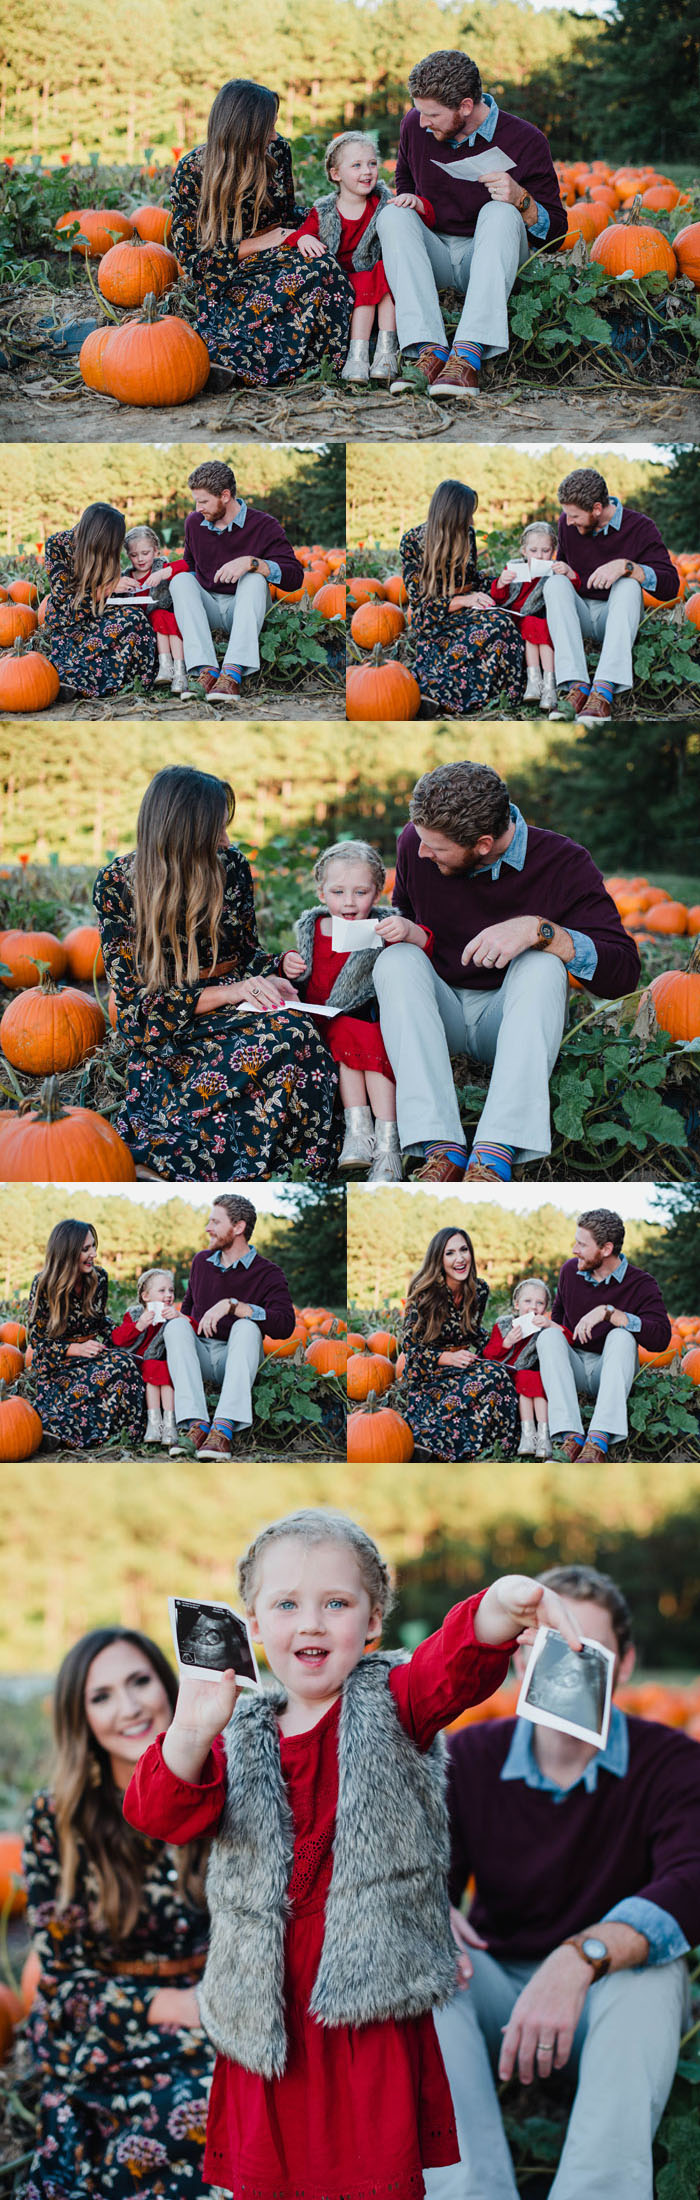 Fall pumpkin patch pregnancy announcement